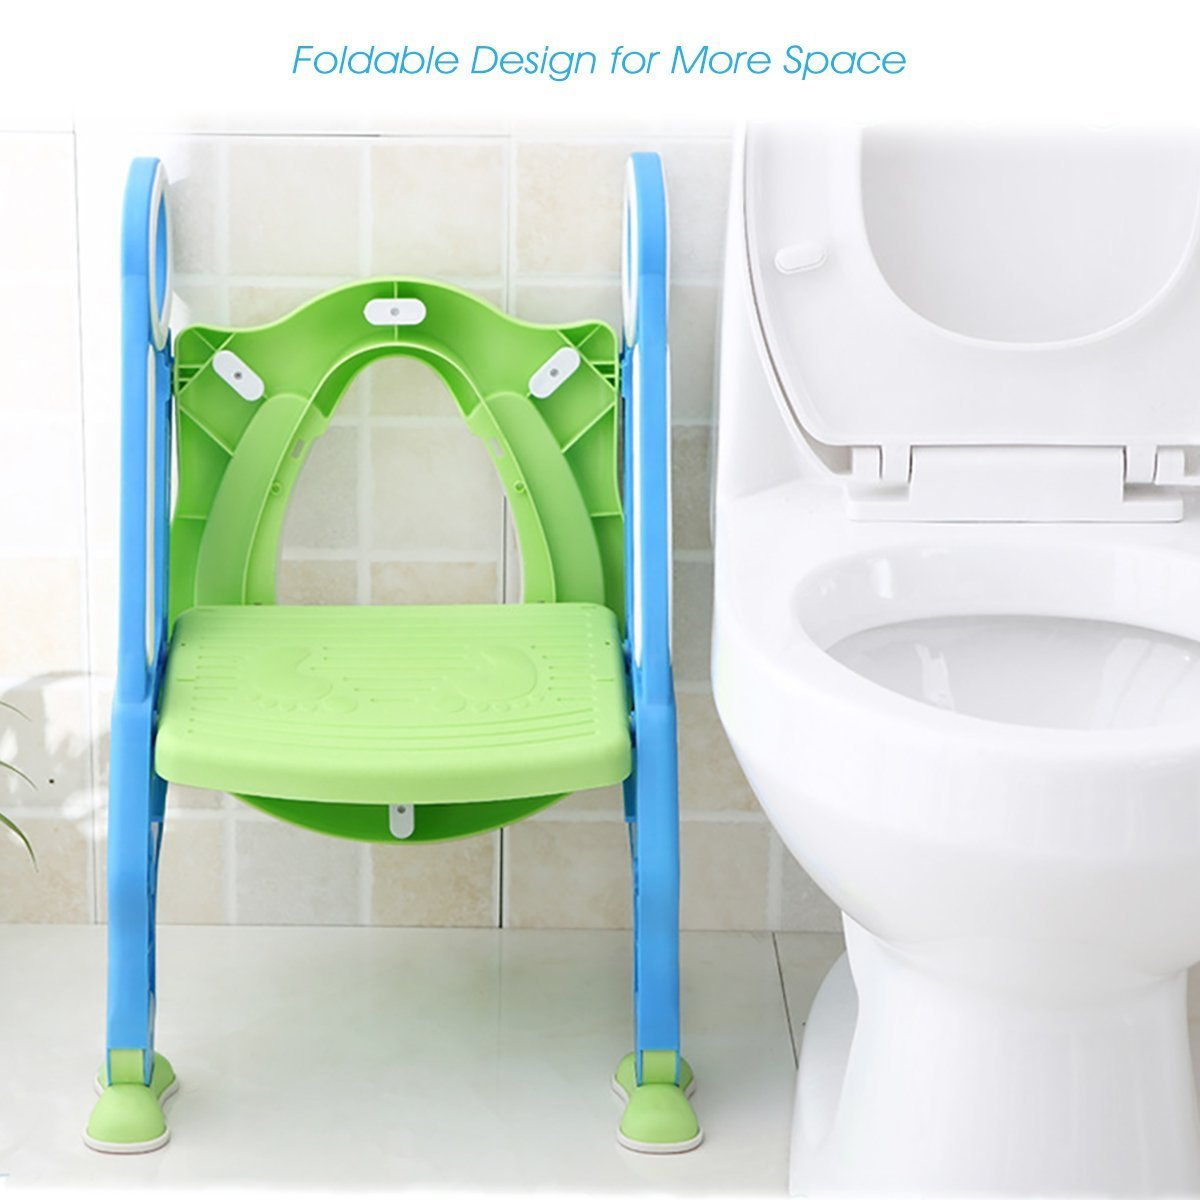 Mangohood Potty Training Toilet Seat with Step Stool Ladder for Boy and Girl Baby Toddler Kid Children's Toilet Training Seat Chair with Soft Padded Seat and Sturdy Non-Slip Wide Step (Blue Green) by Mangohood (Image #5)